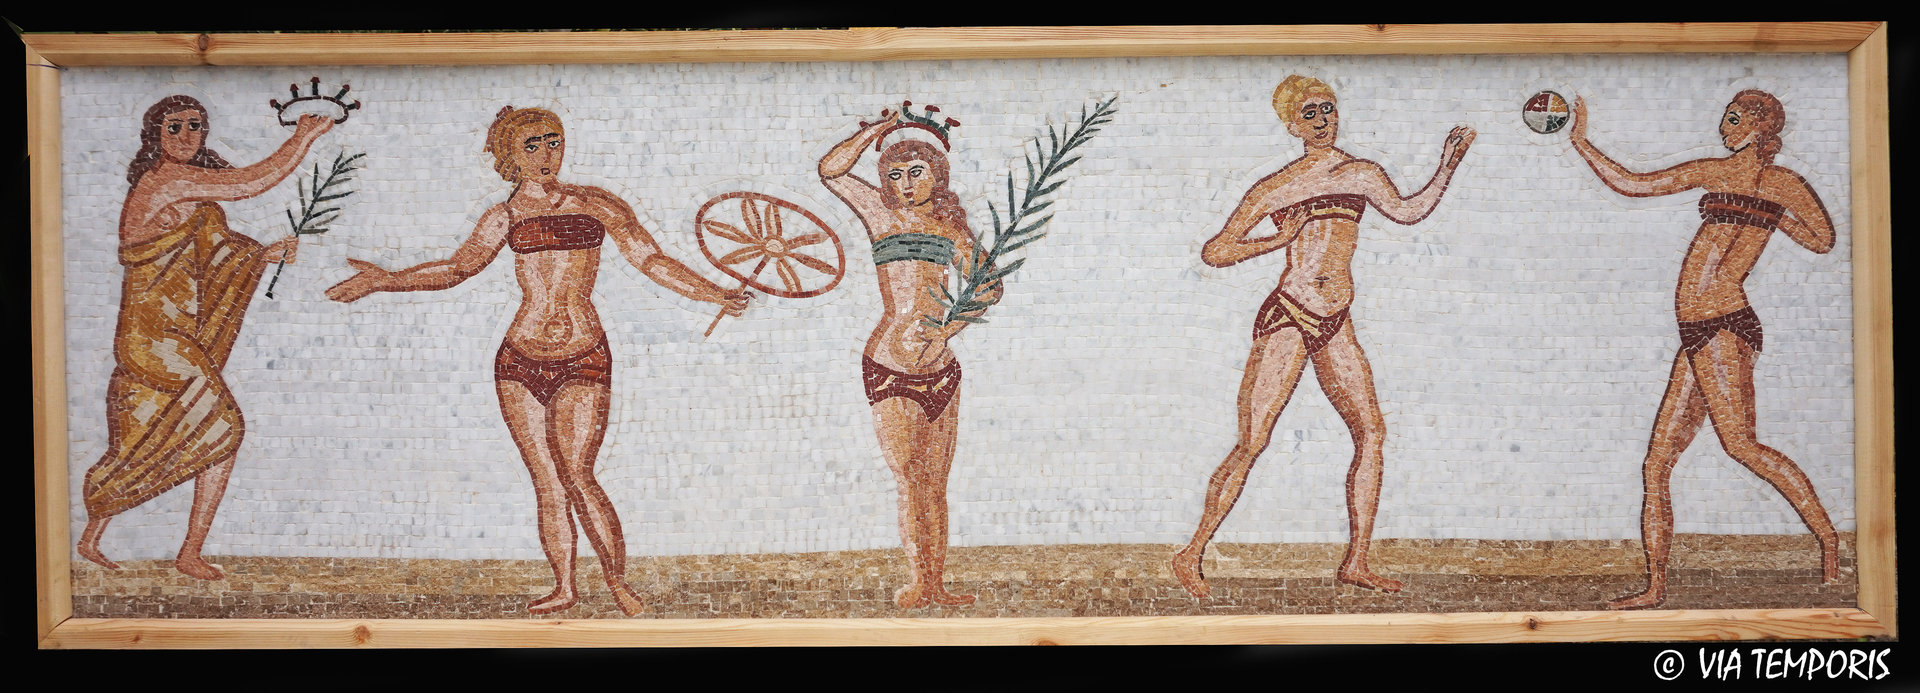 ROMAN MOSAIC - MOSAIC WITH ATHLETIC WOMEN IN BIKINI - CASALE VILLA, SICILY